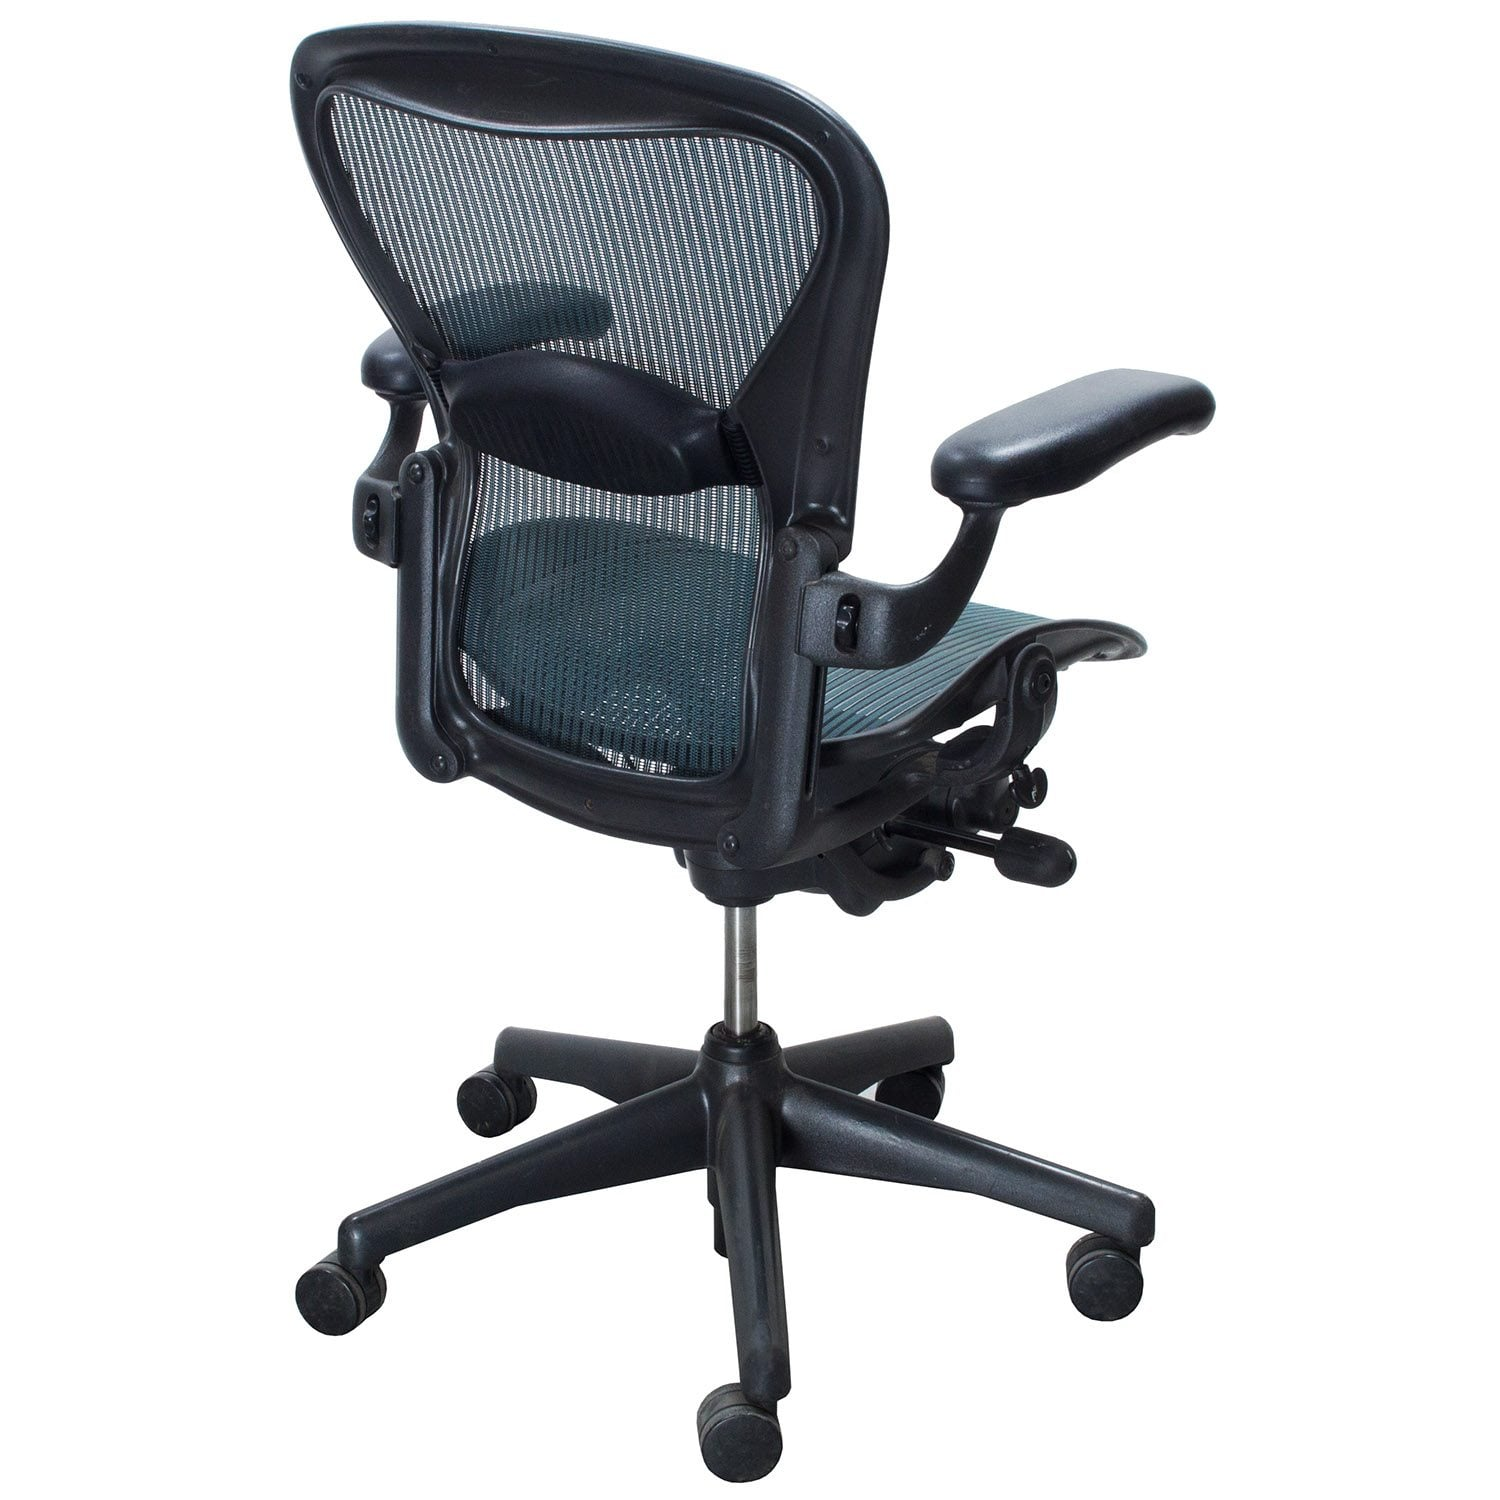 Aeron chair sizing  Western sterling